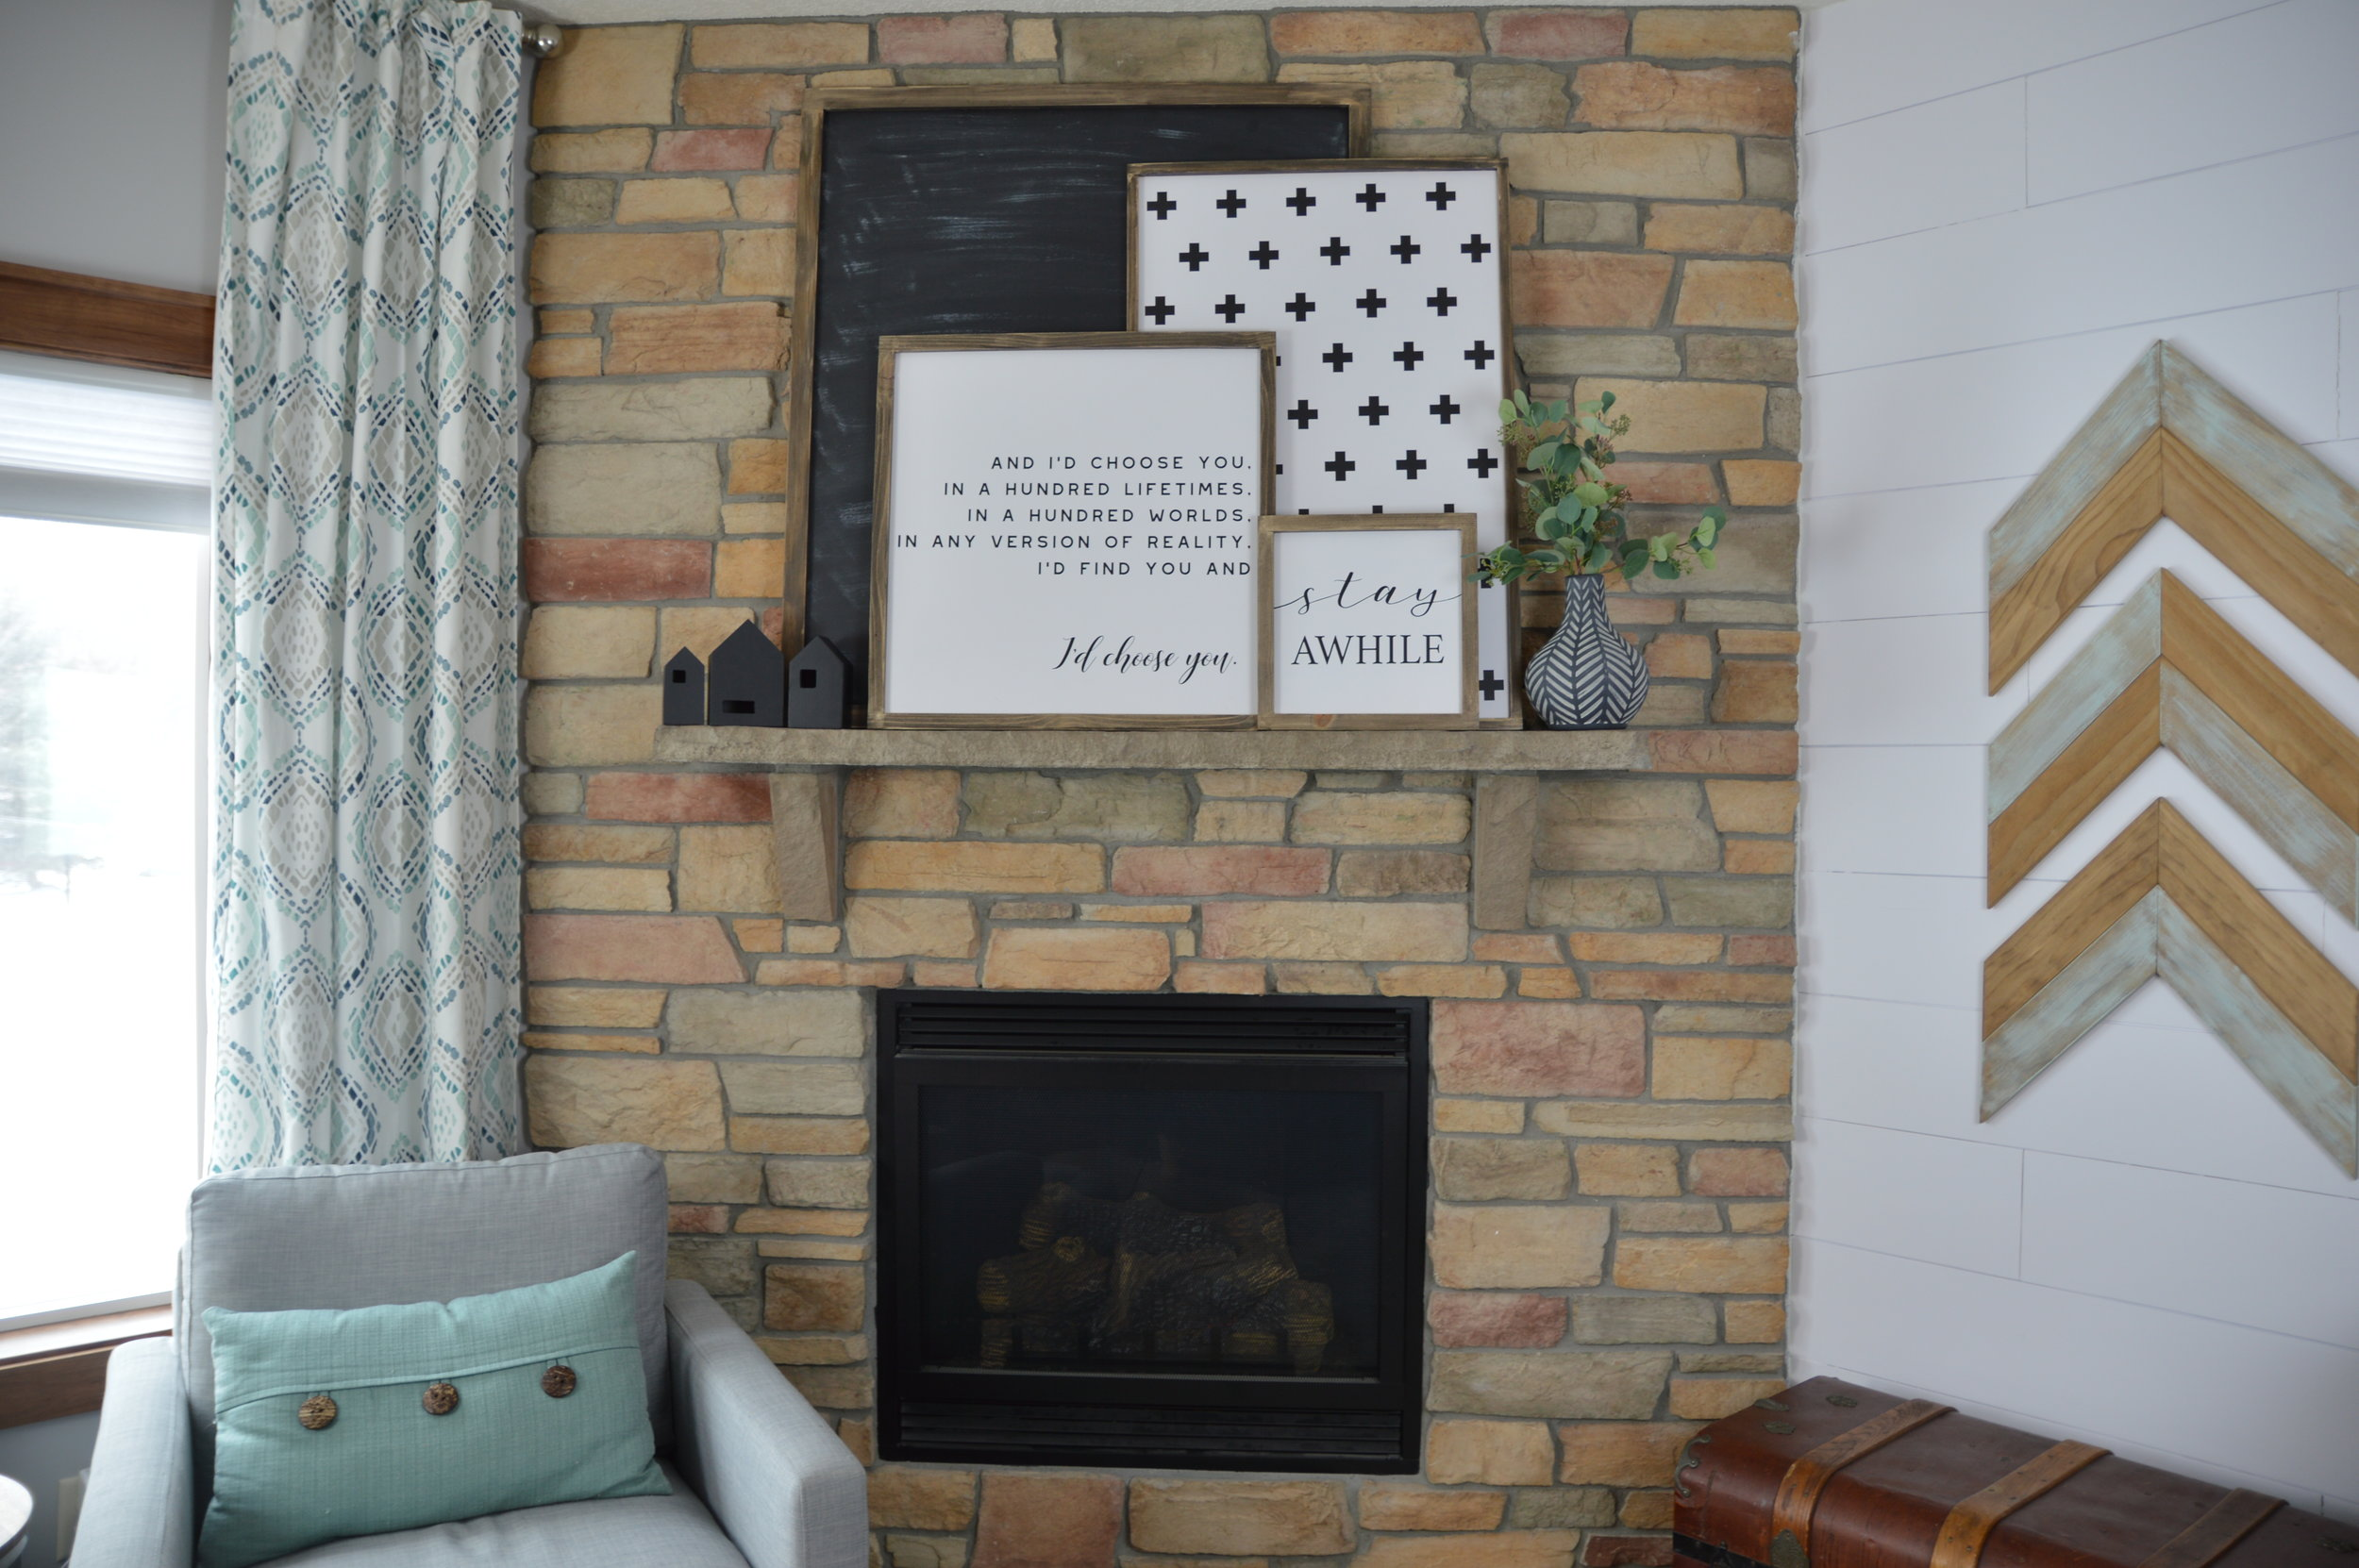 Here's what our fireplace looked like originally.